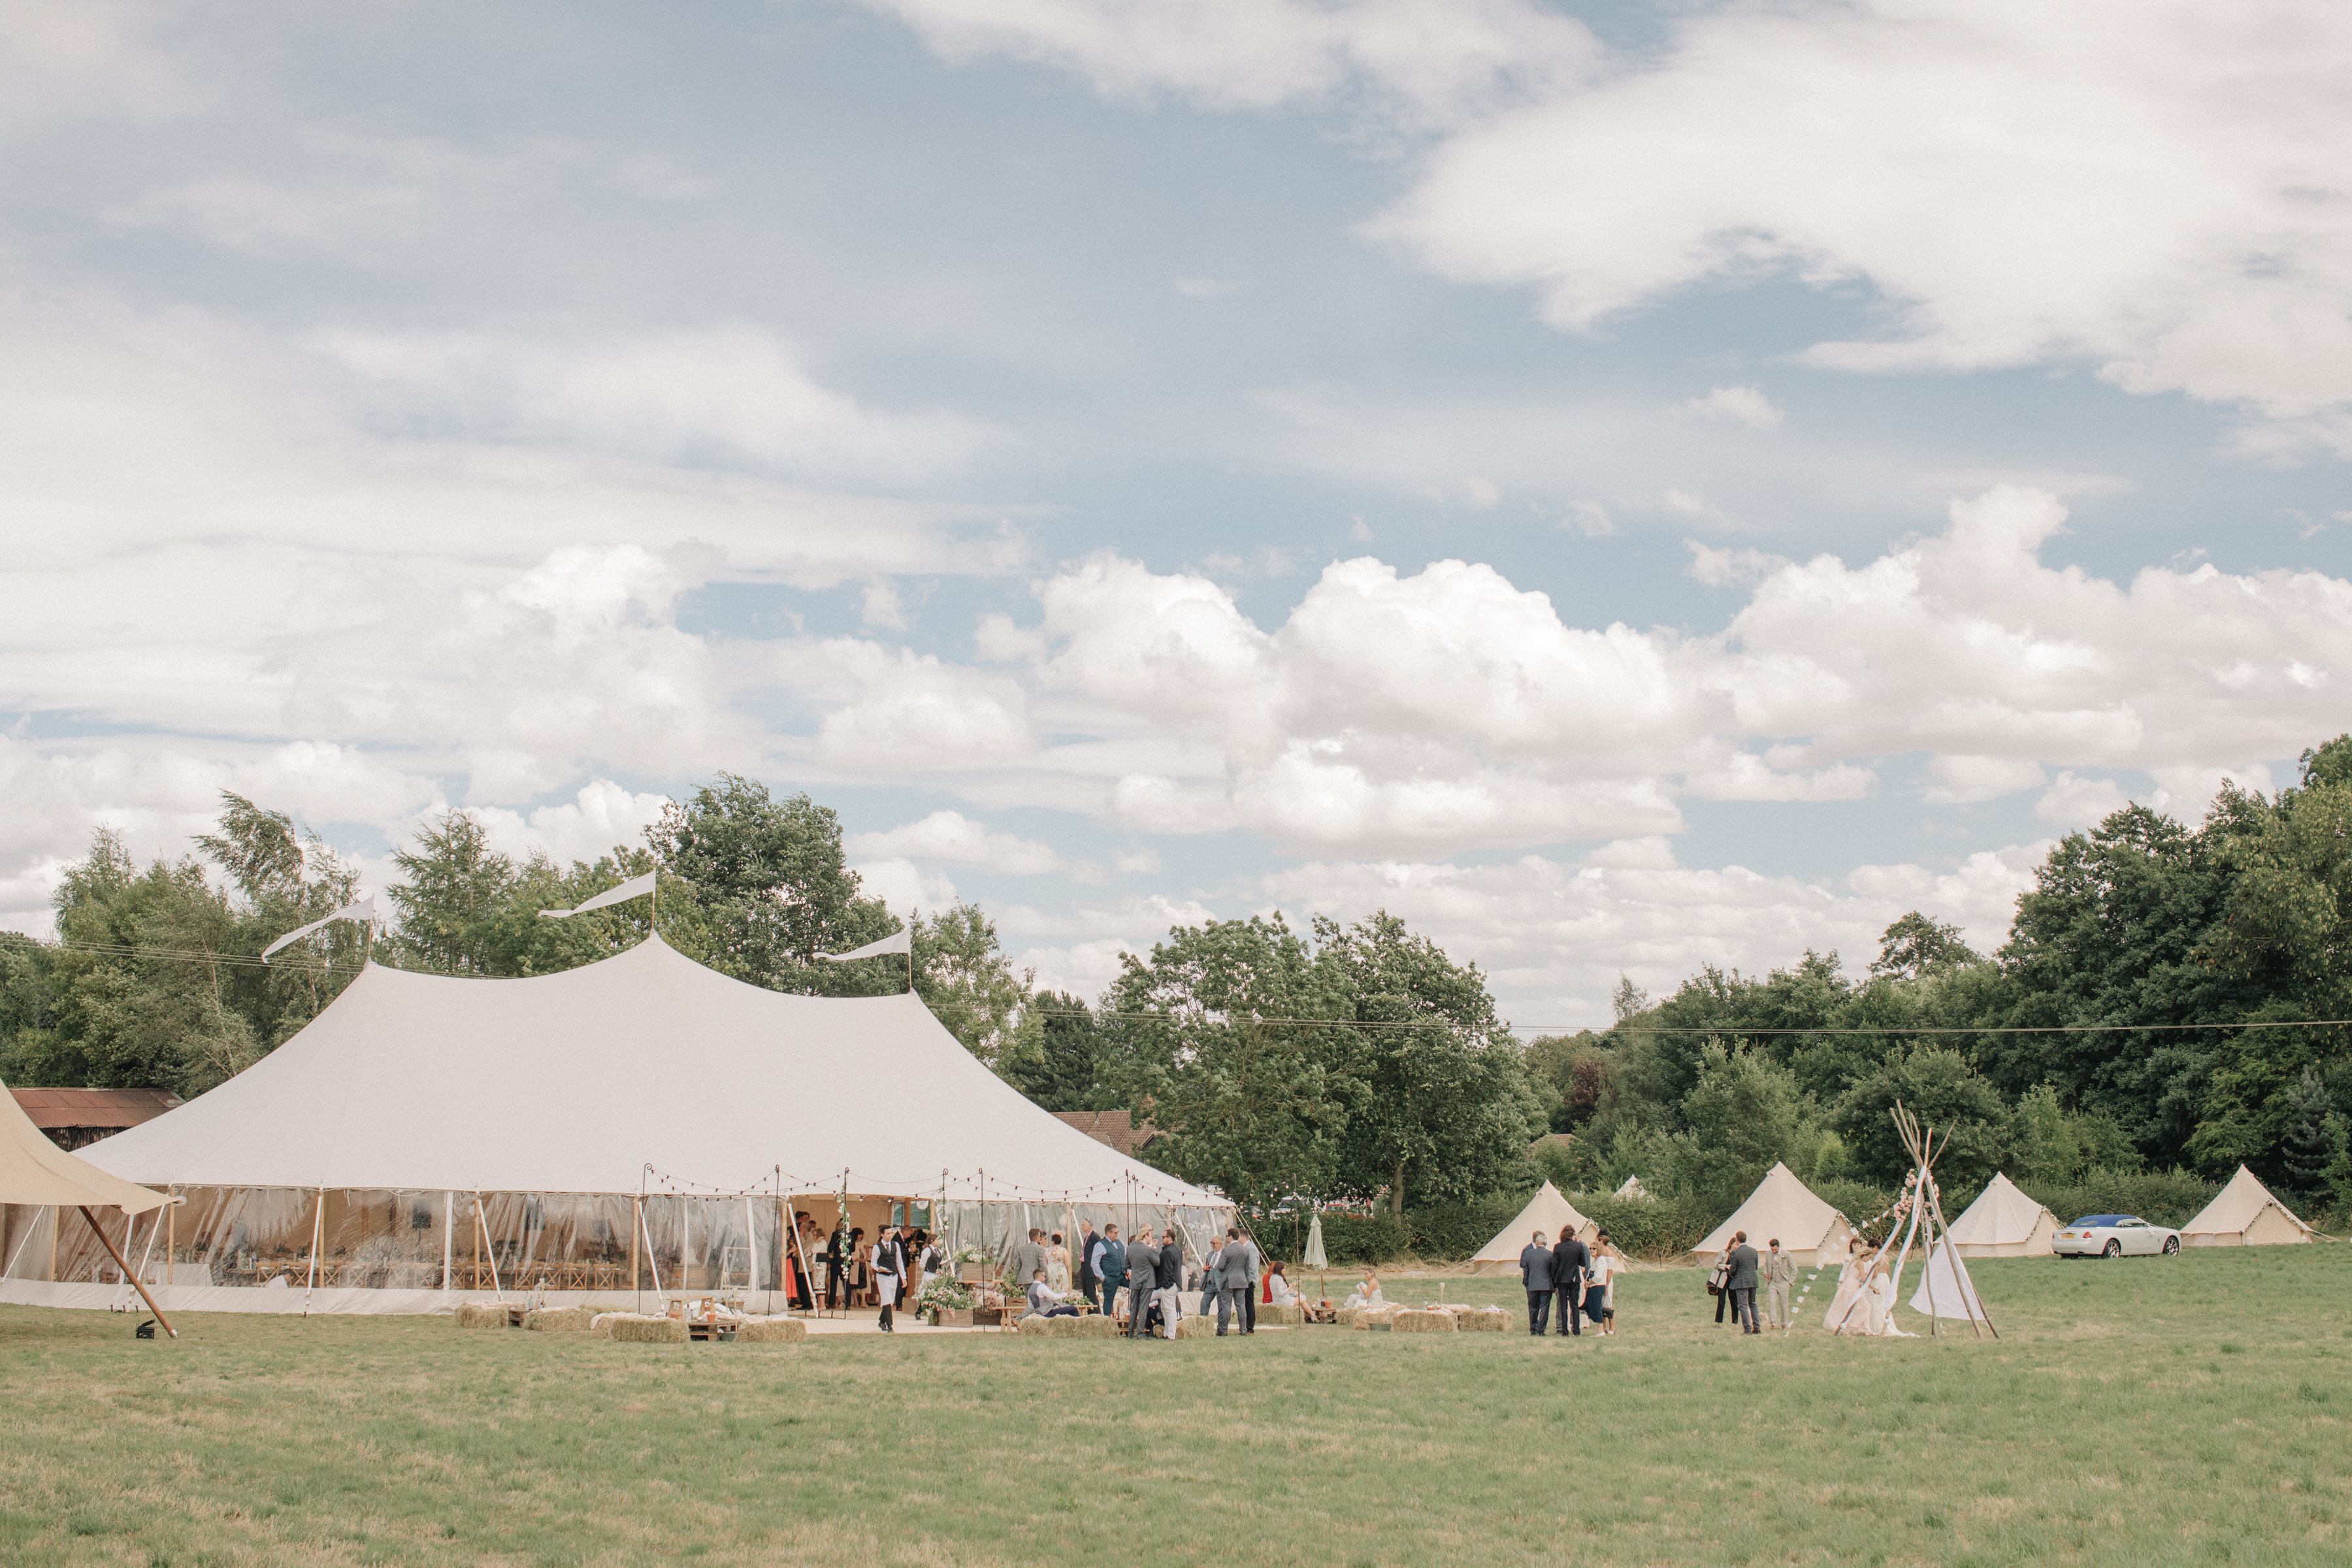 Steph & Ed's PapaKåta Sperry Tent wedding at home in Nottingham captured by M & J Photography